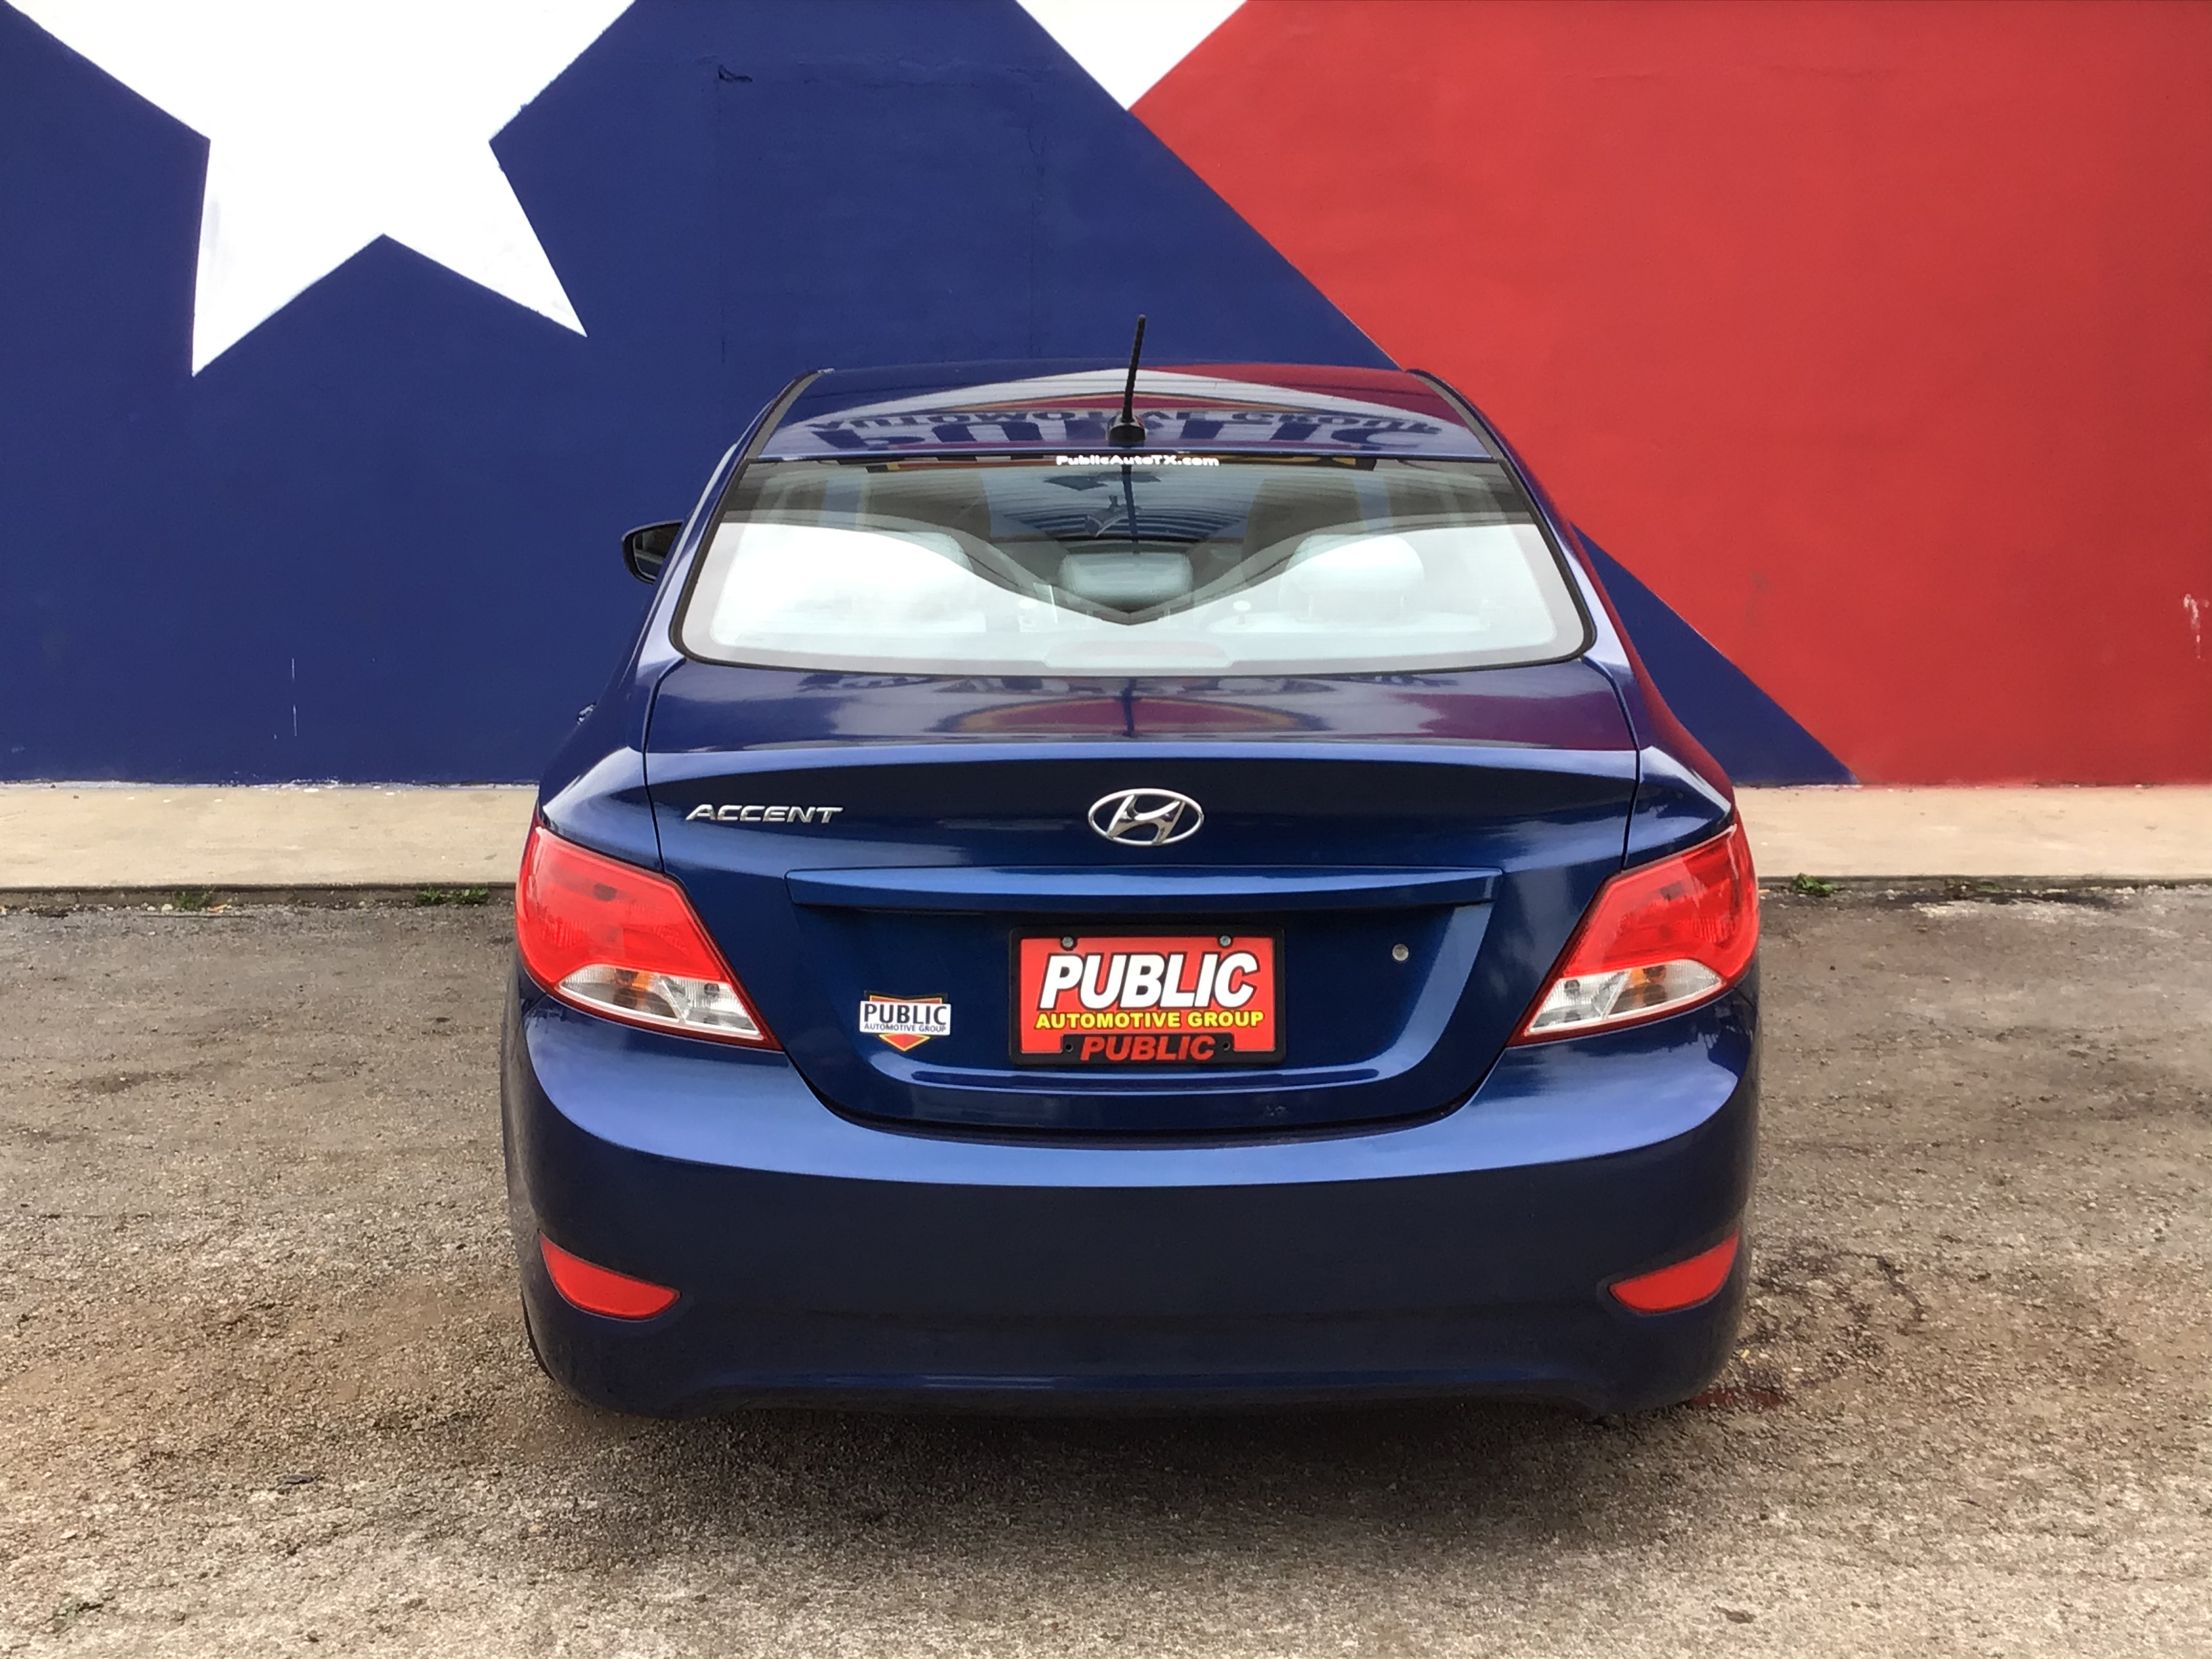 used vehicle - Sedan HYUNDAI ACCENT 2016